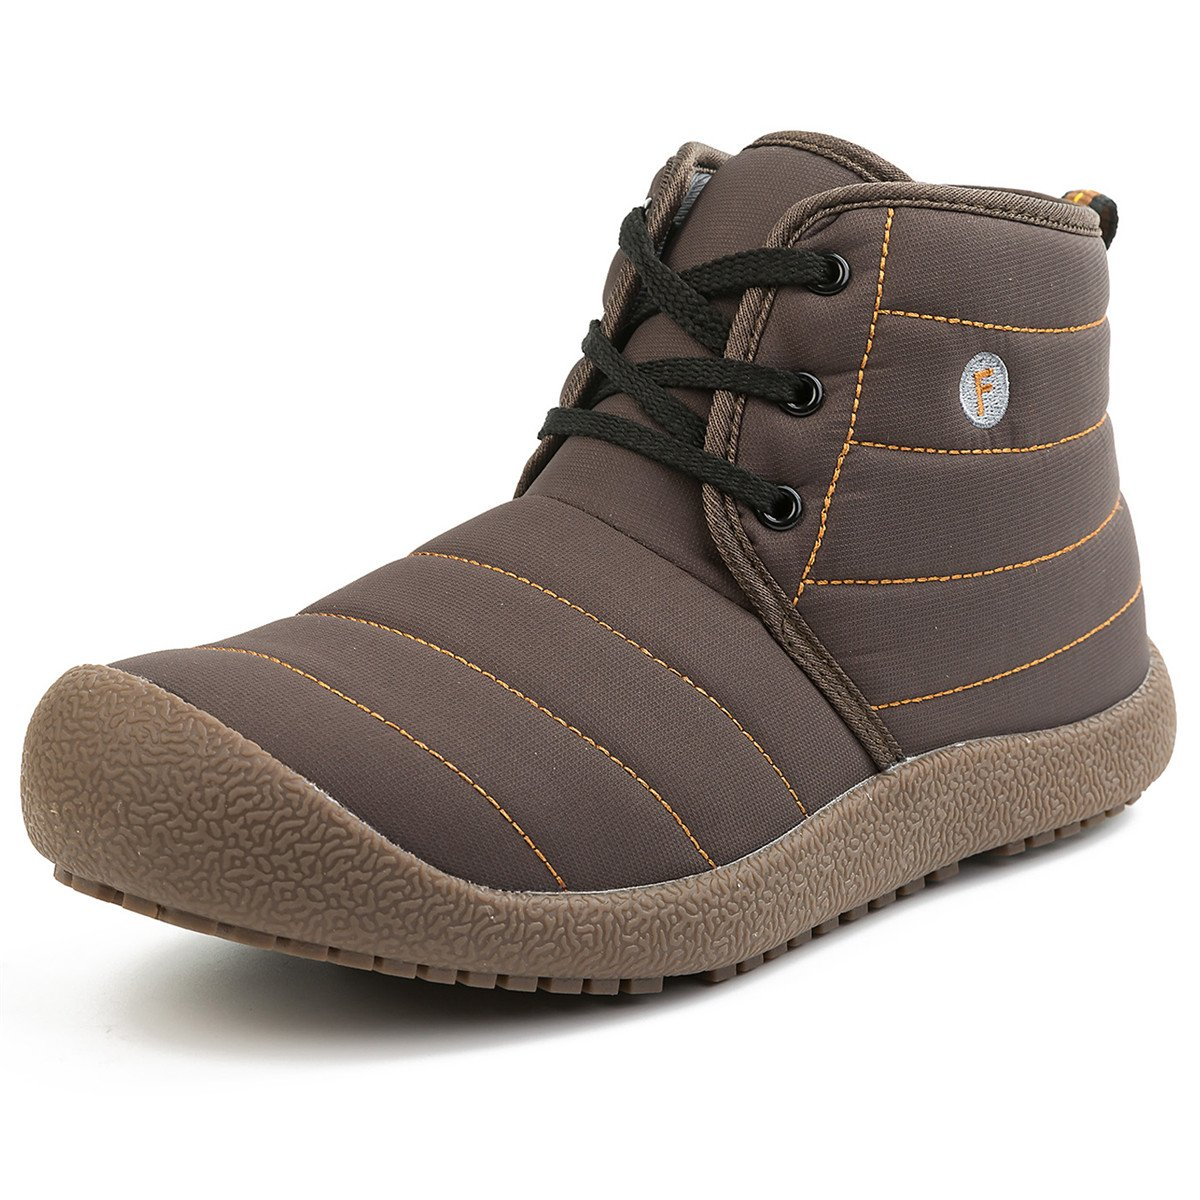 JIASUQI Womens Lightweight Flat Sports Boots Ankle Shoes Brown 9.5 M US